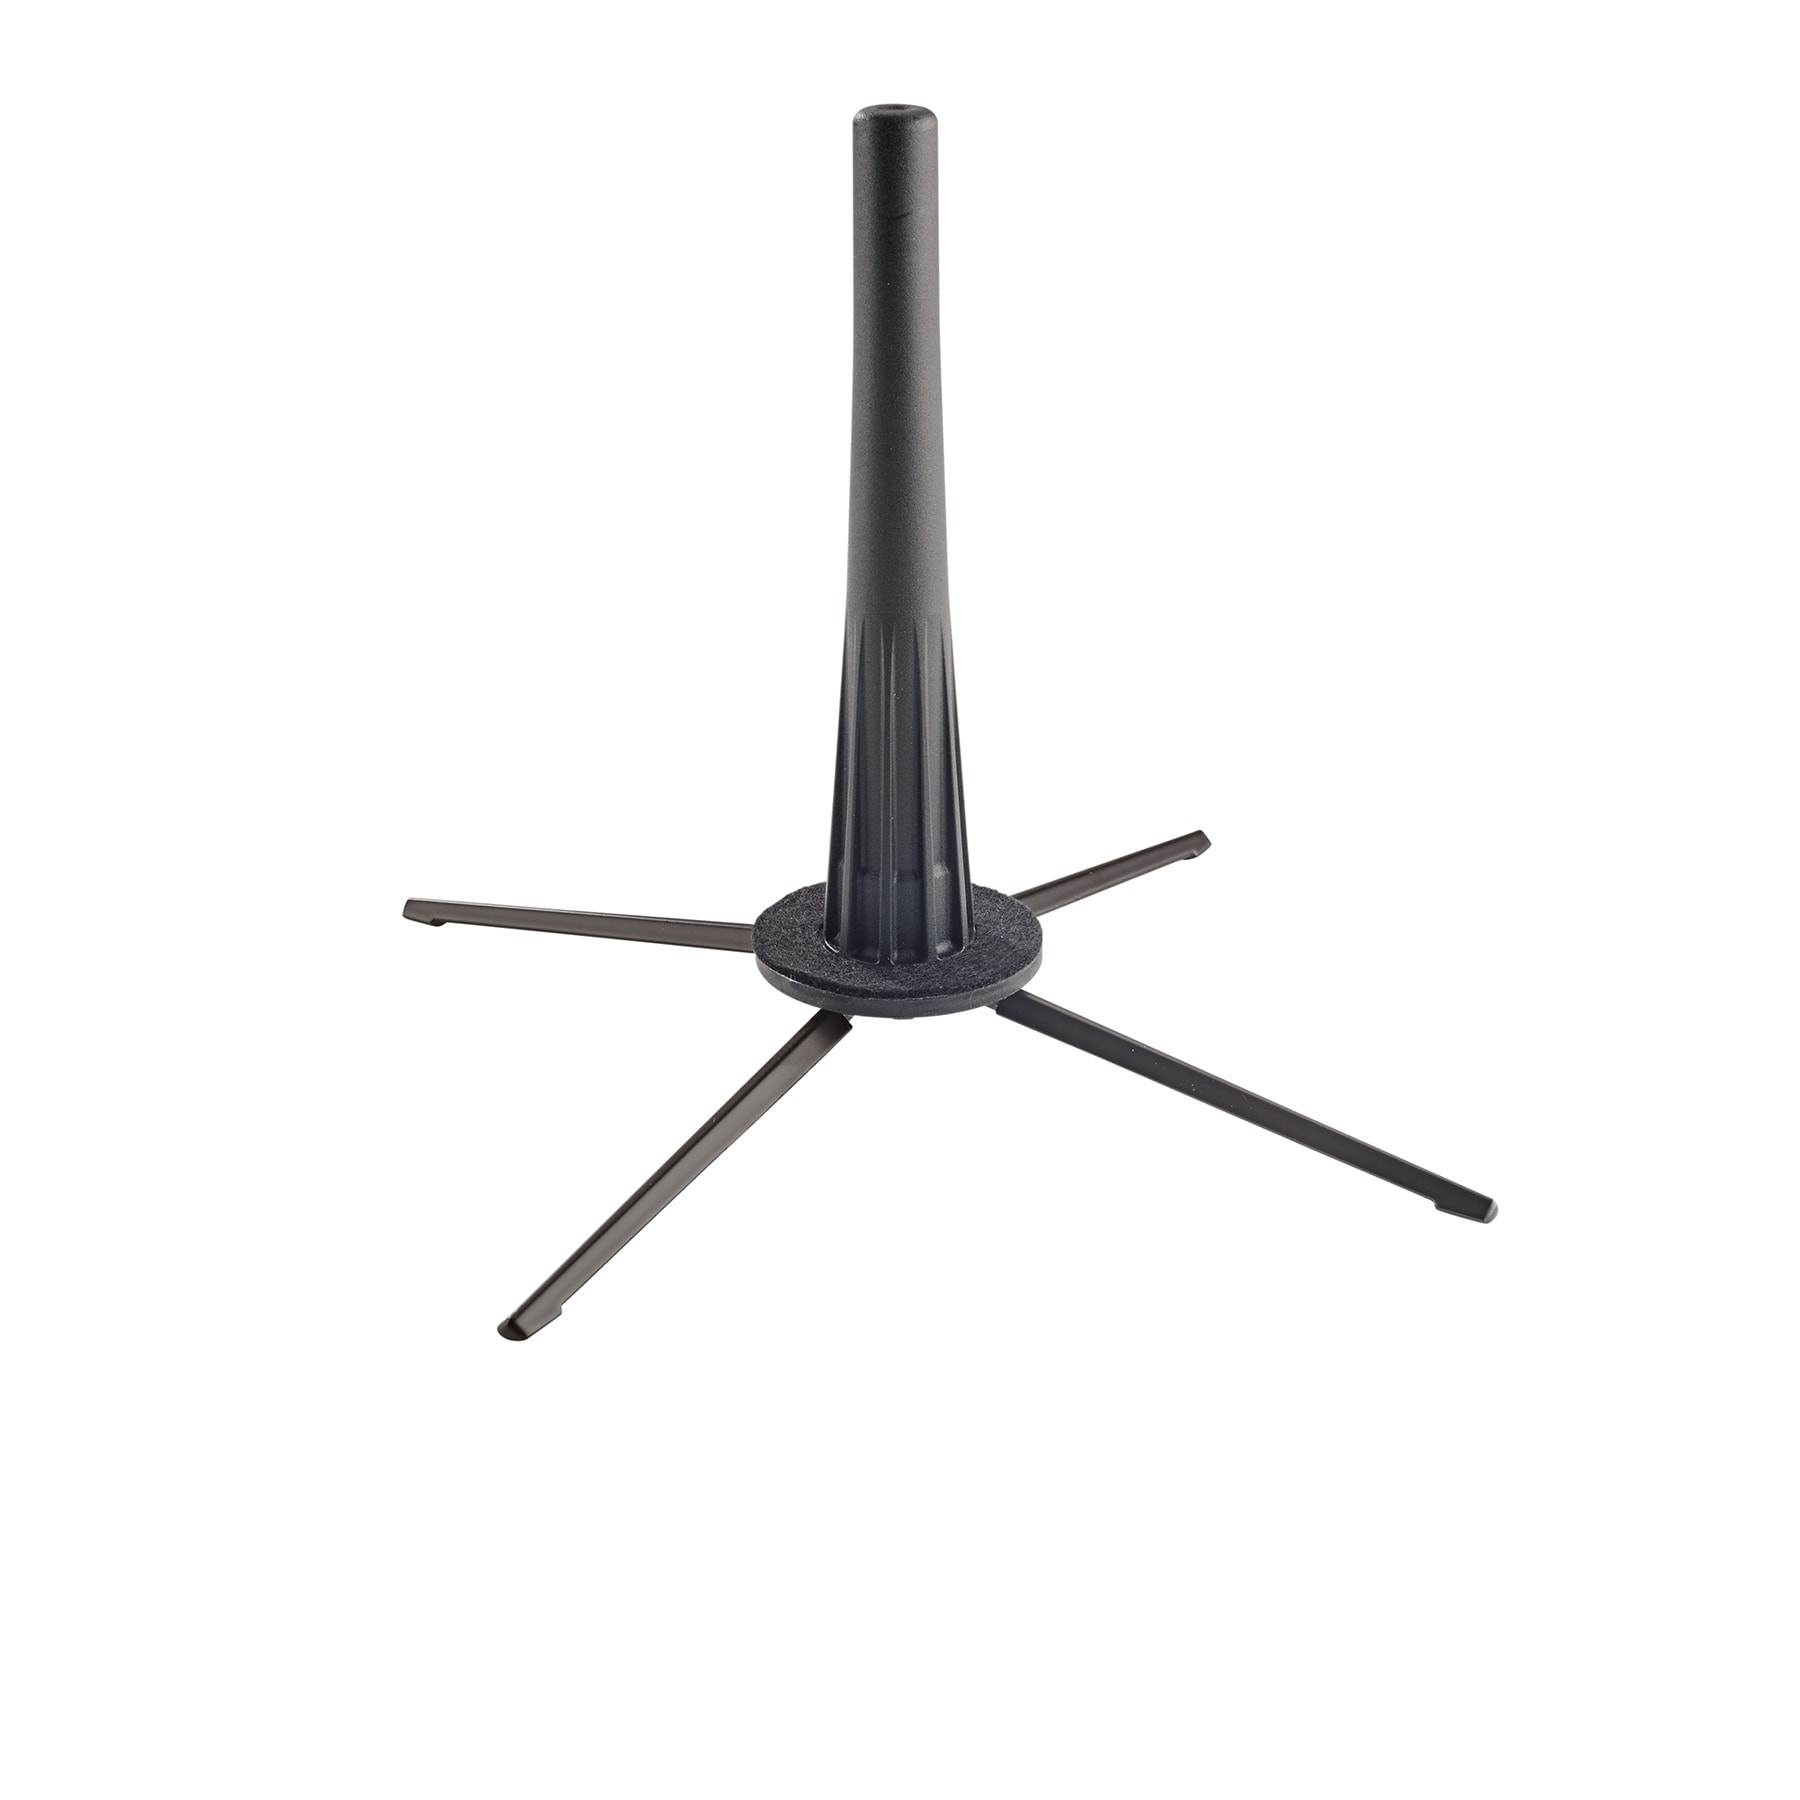 KM15233 - English-horn stand